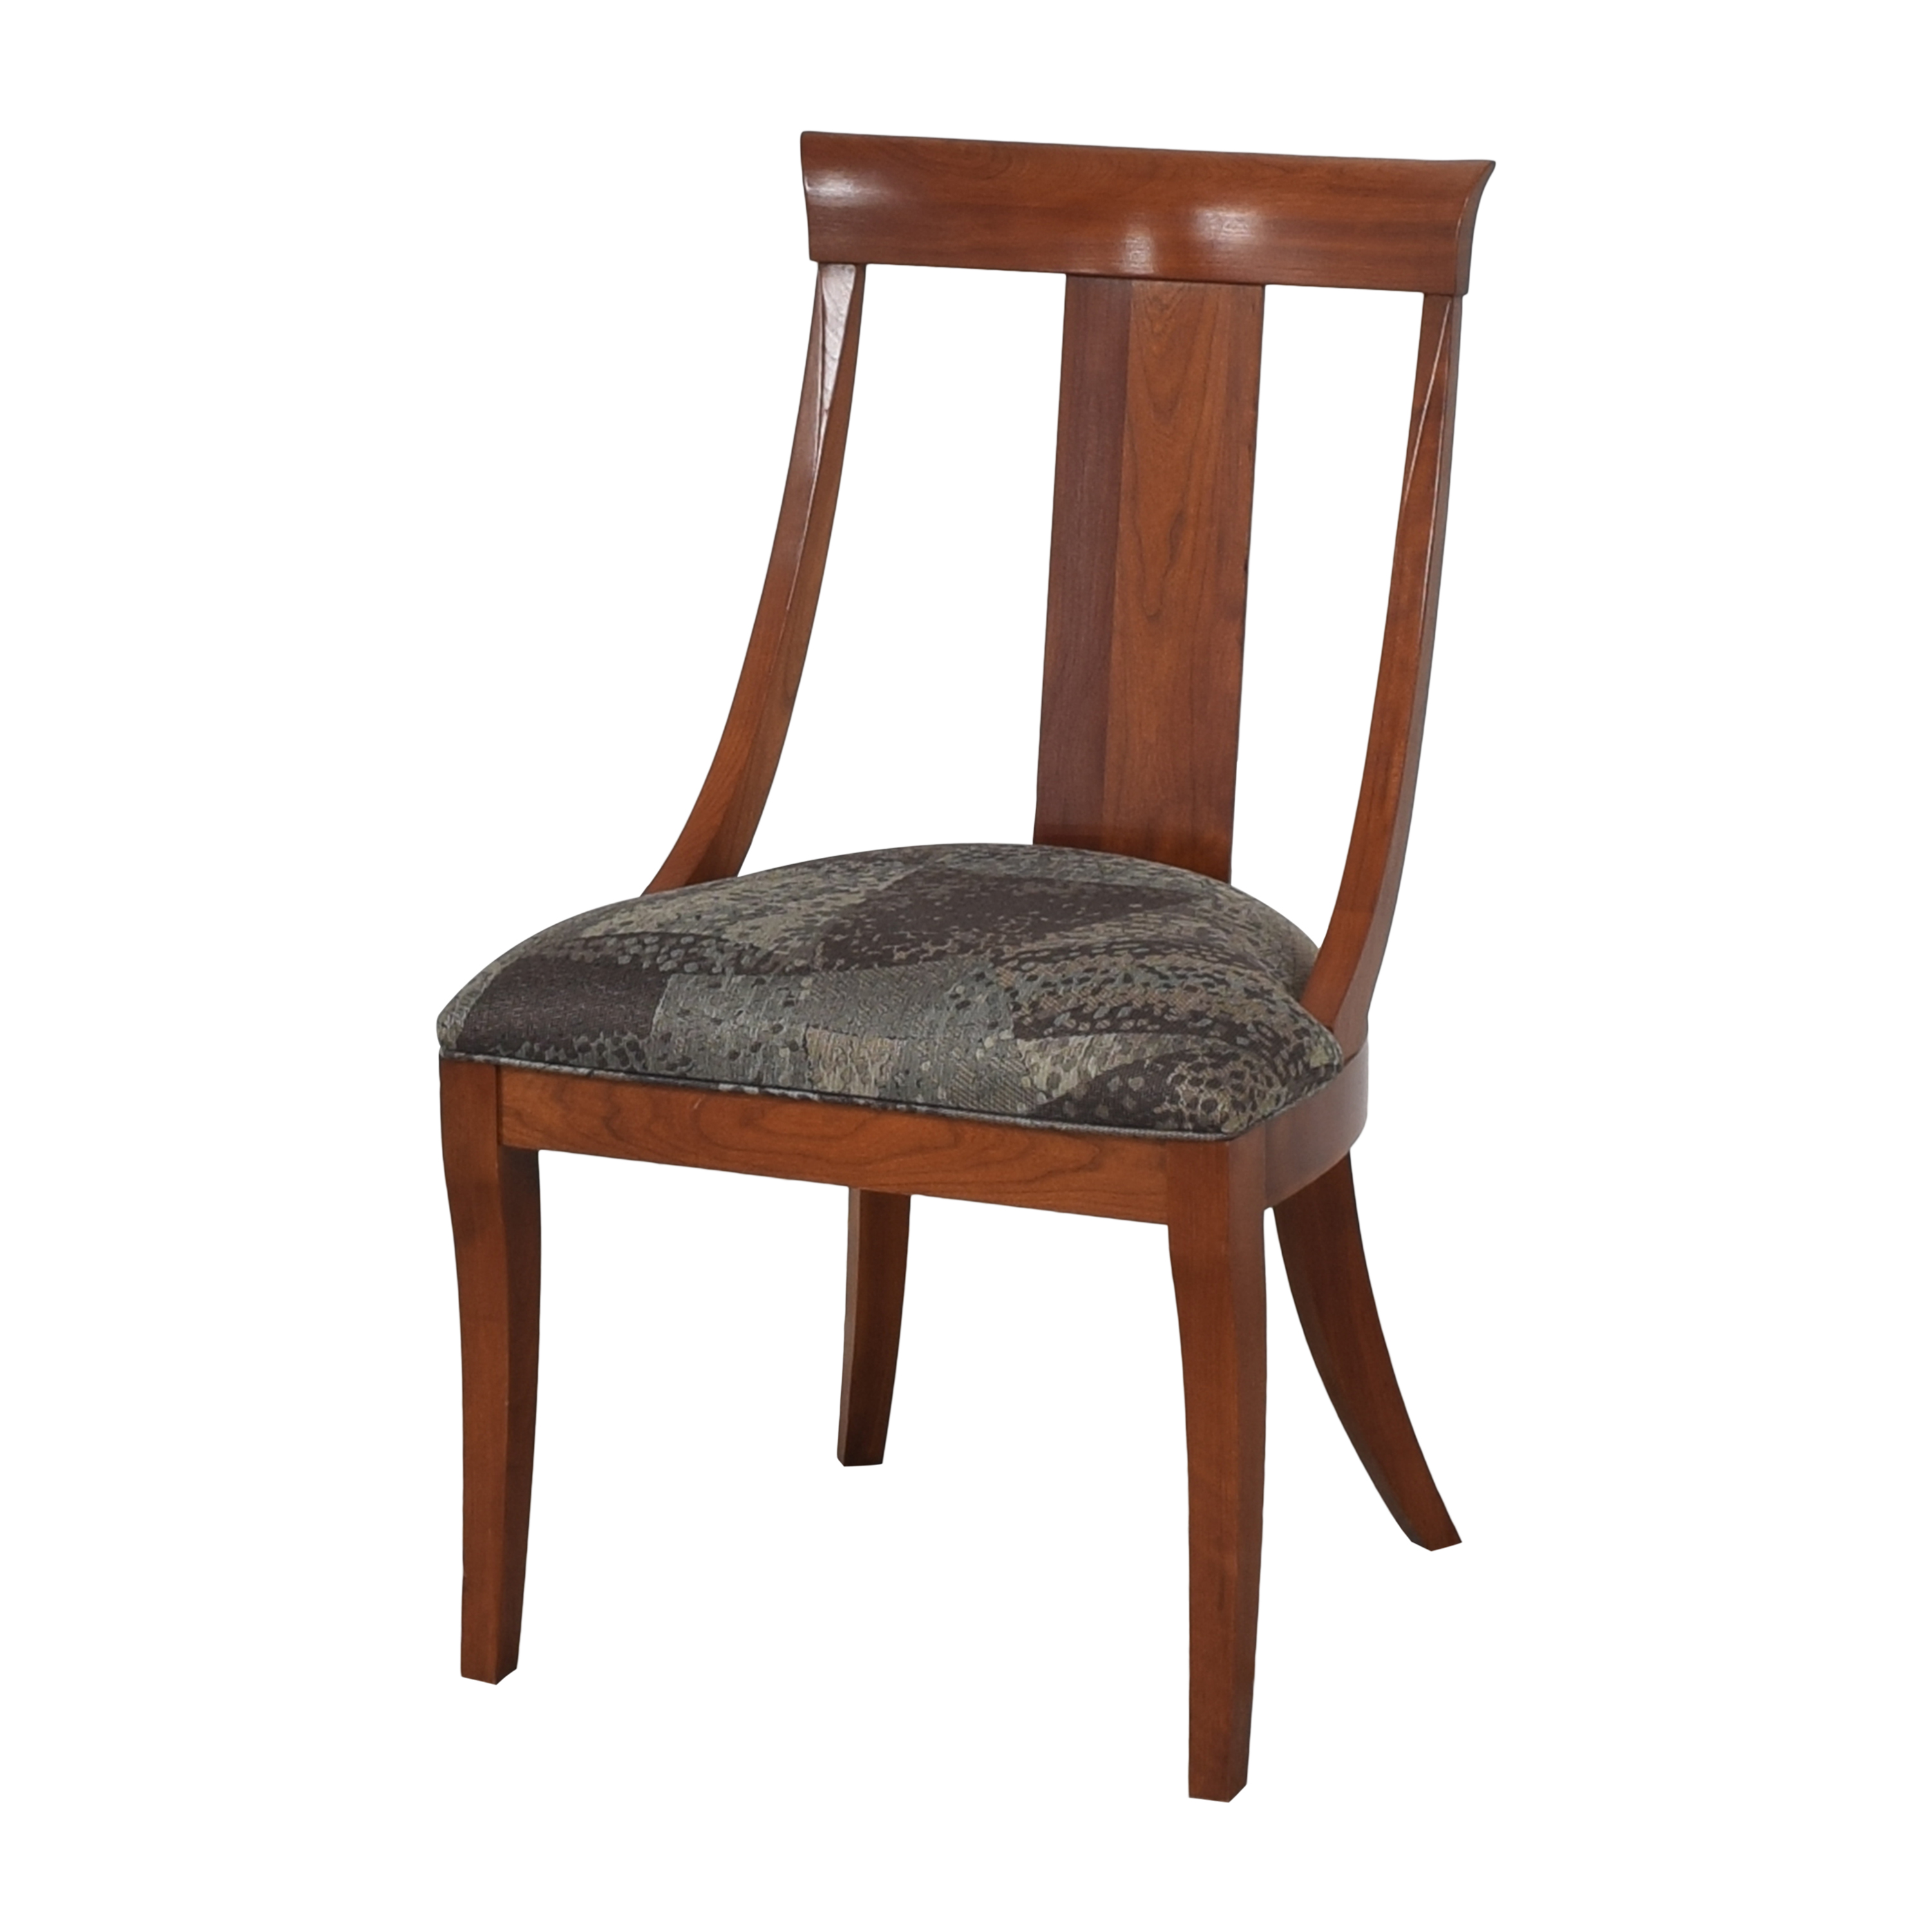 Ethan Allen Medallion Dining Chairs / Chairs